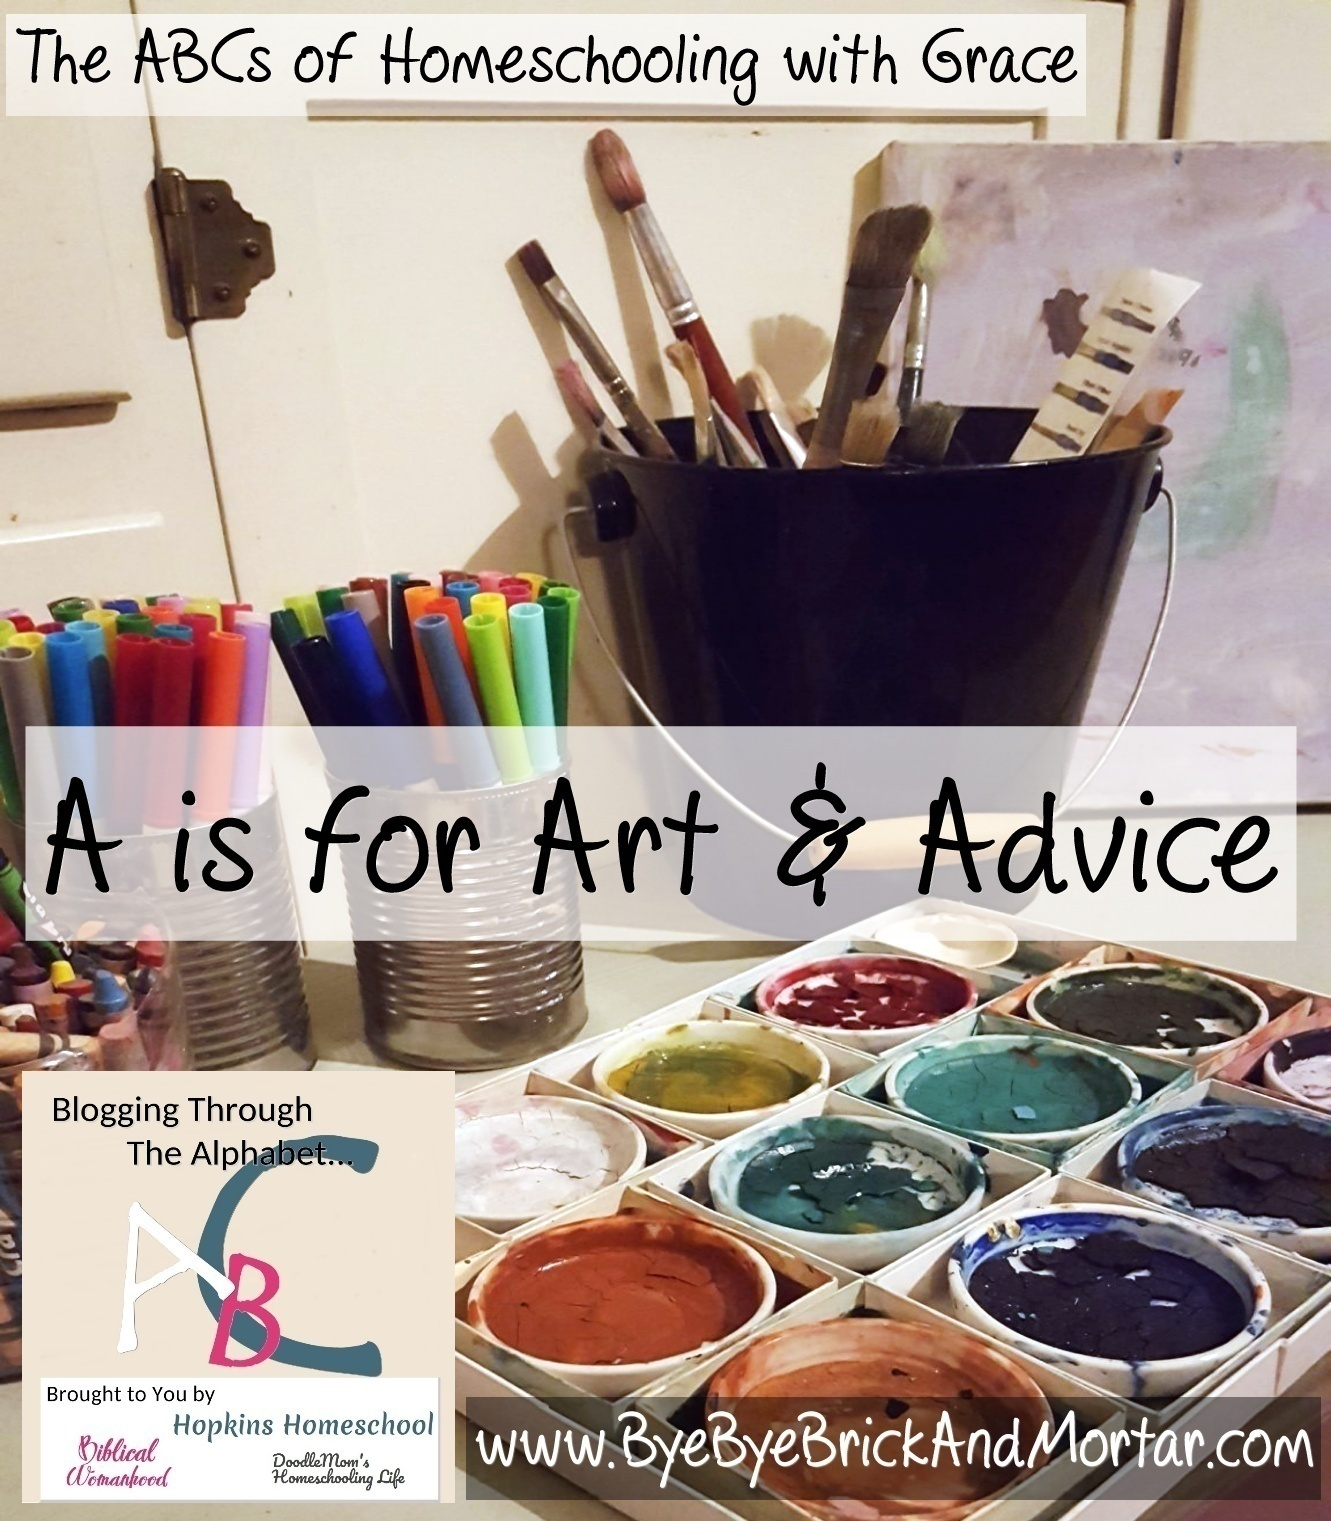 A is for Art & Advice